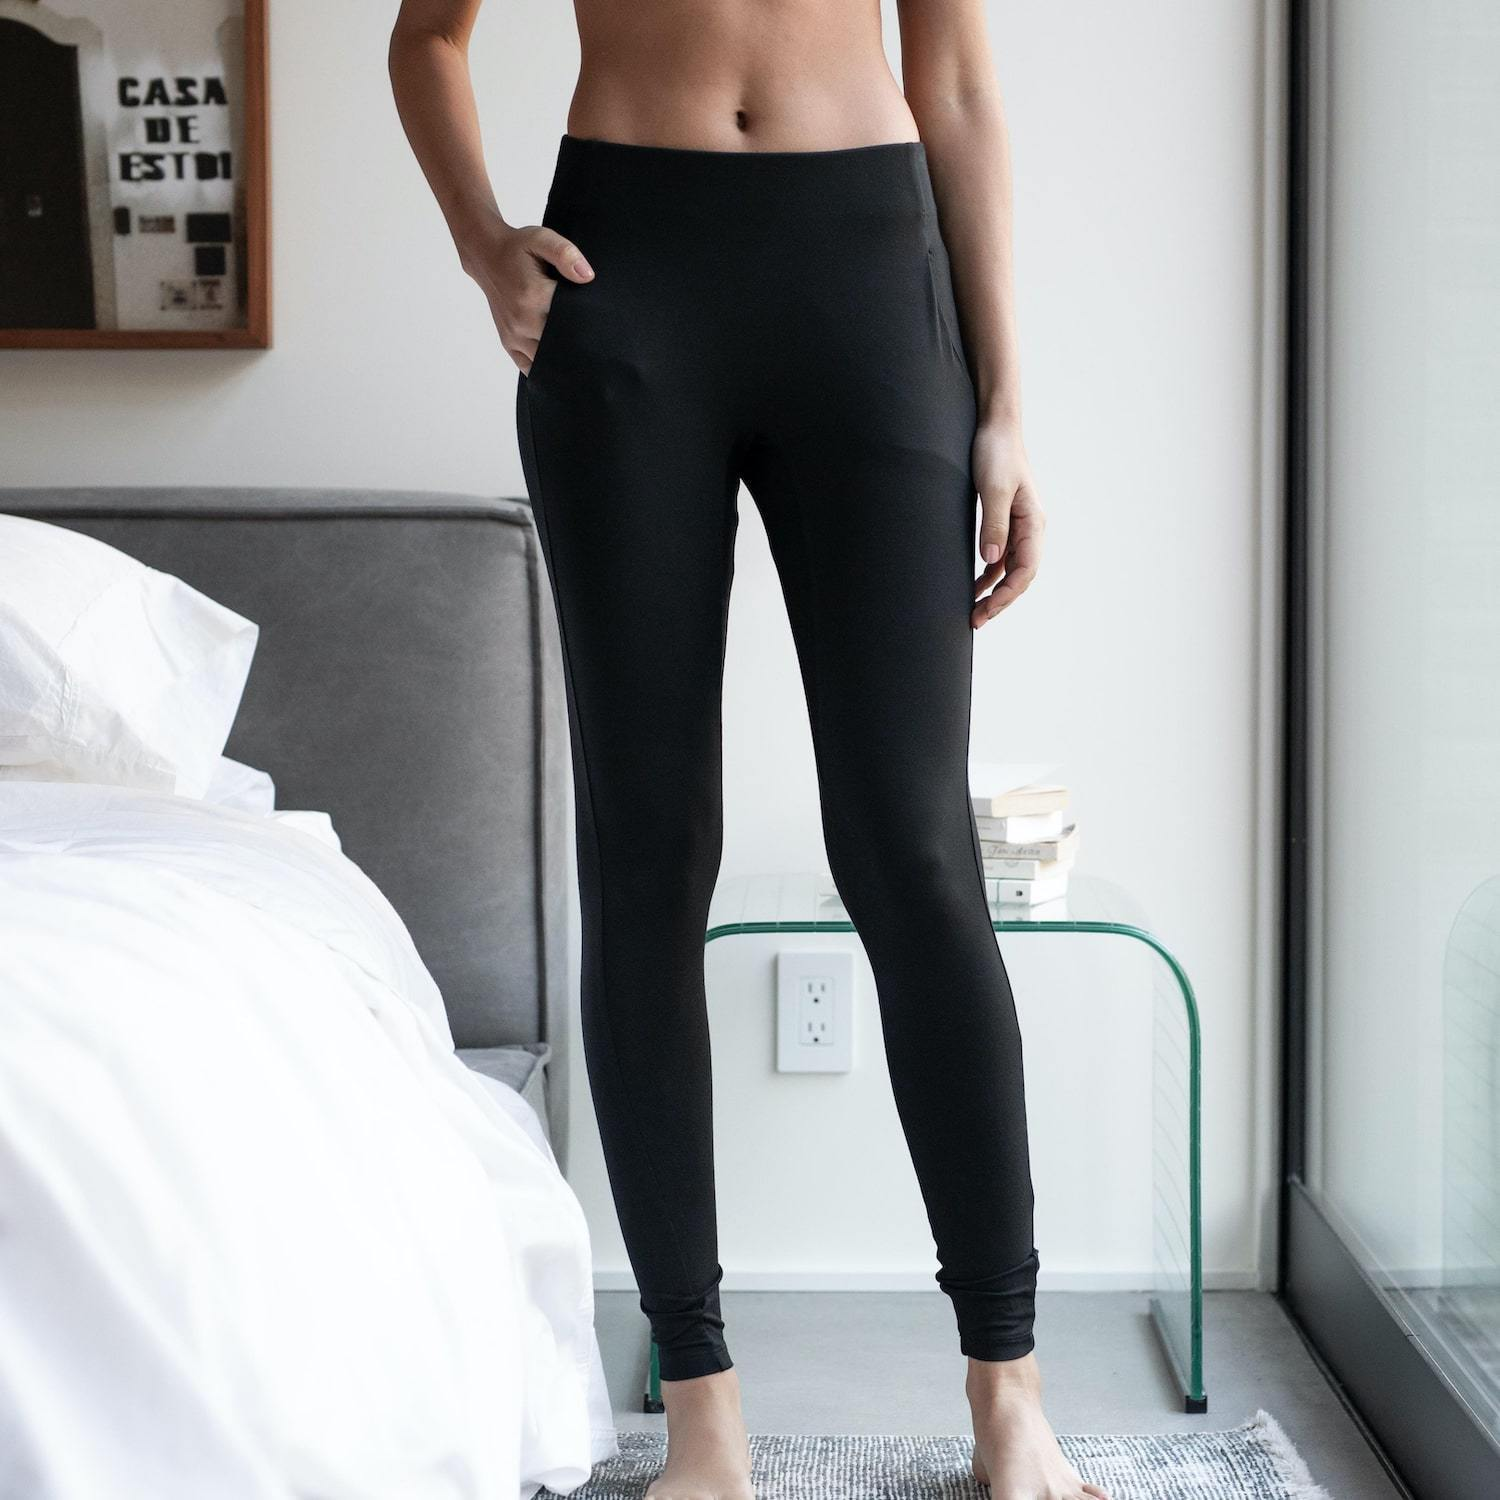 Lunya Sleepwear Siro Pocket Legging - #Black